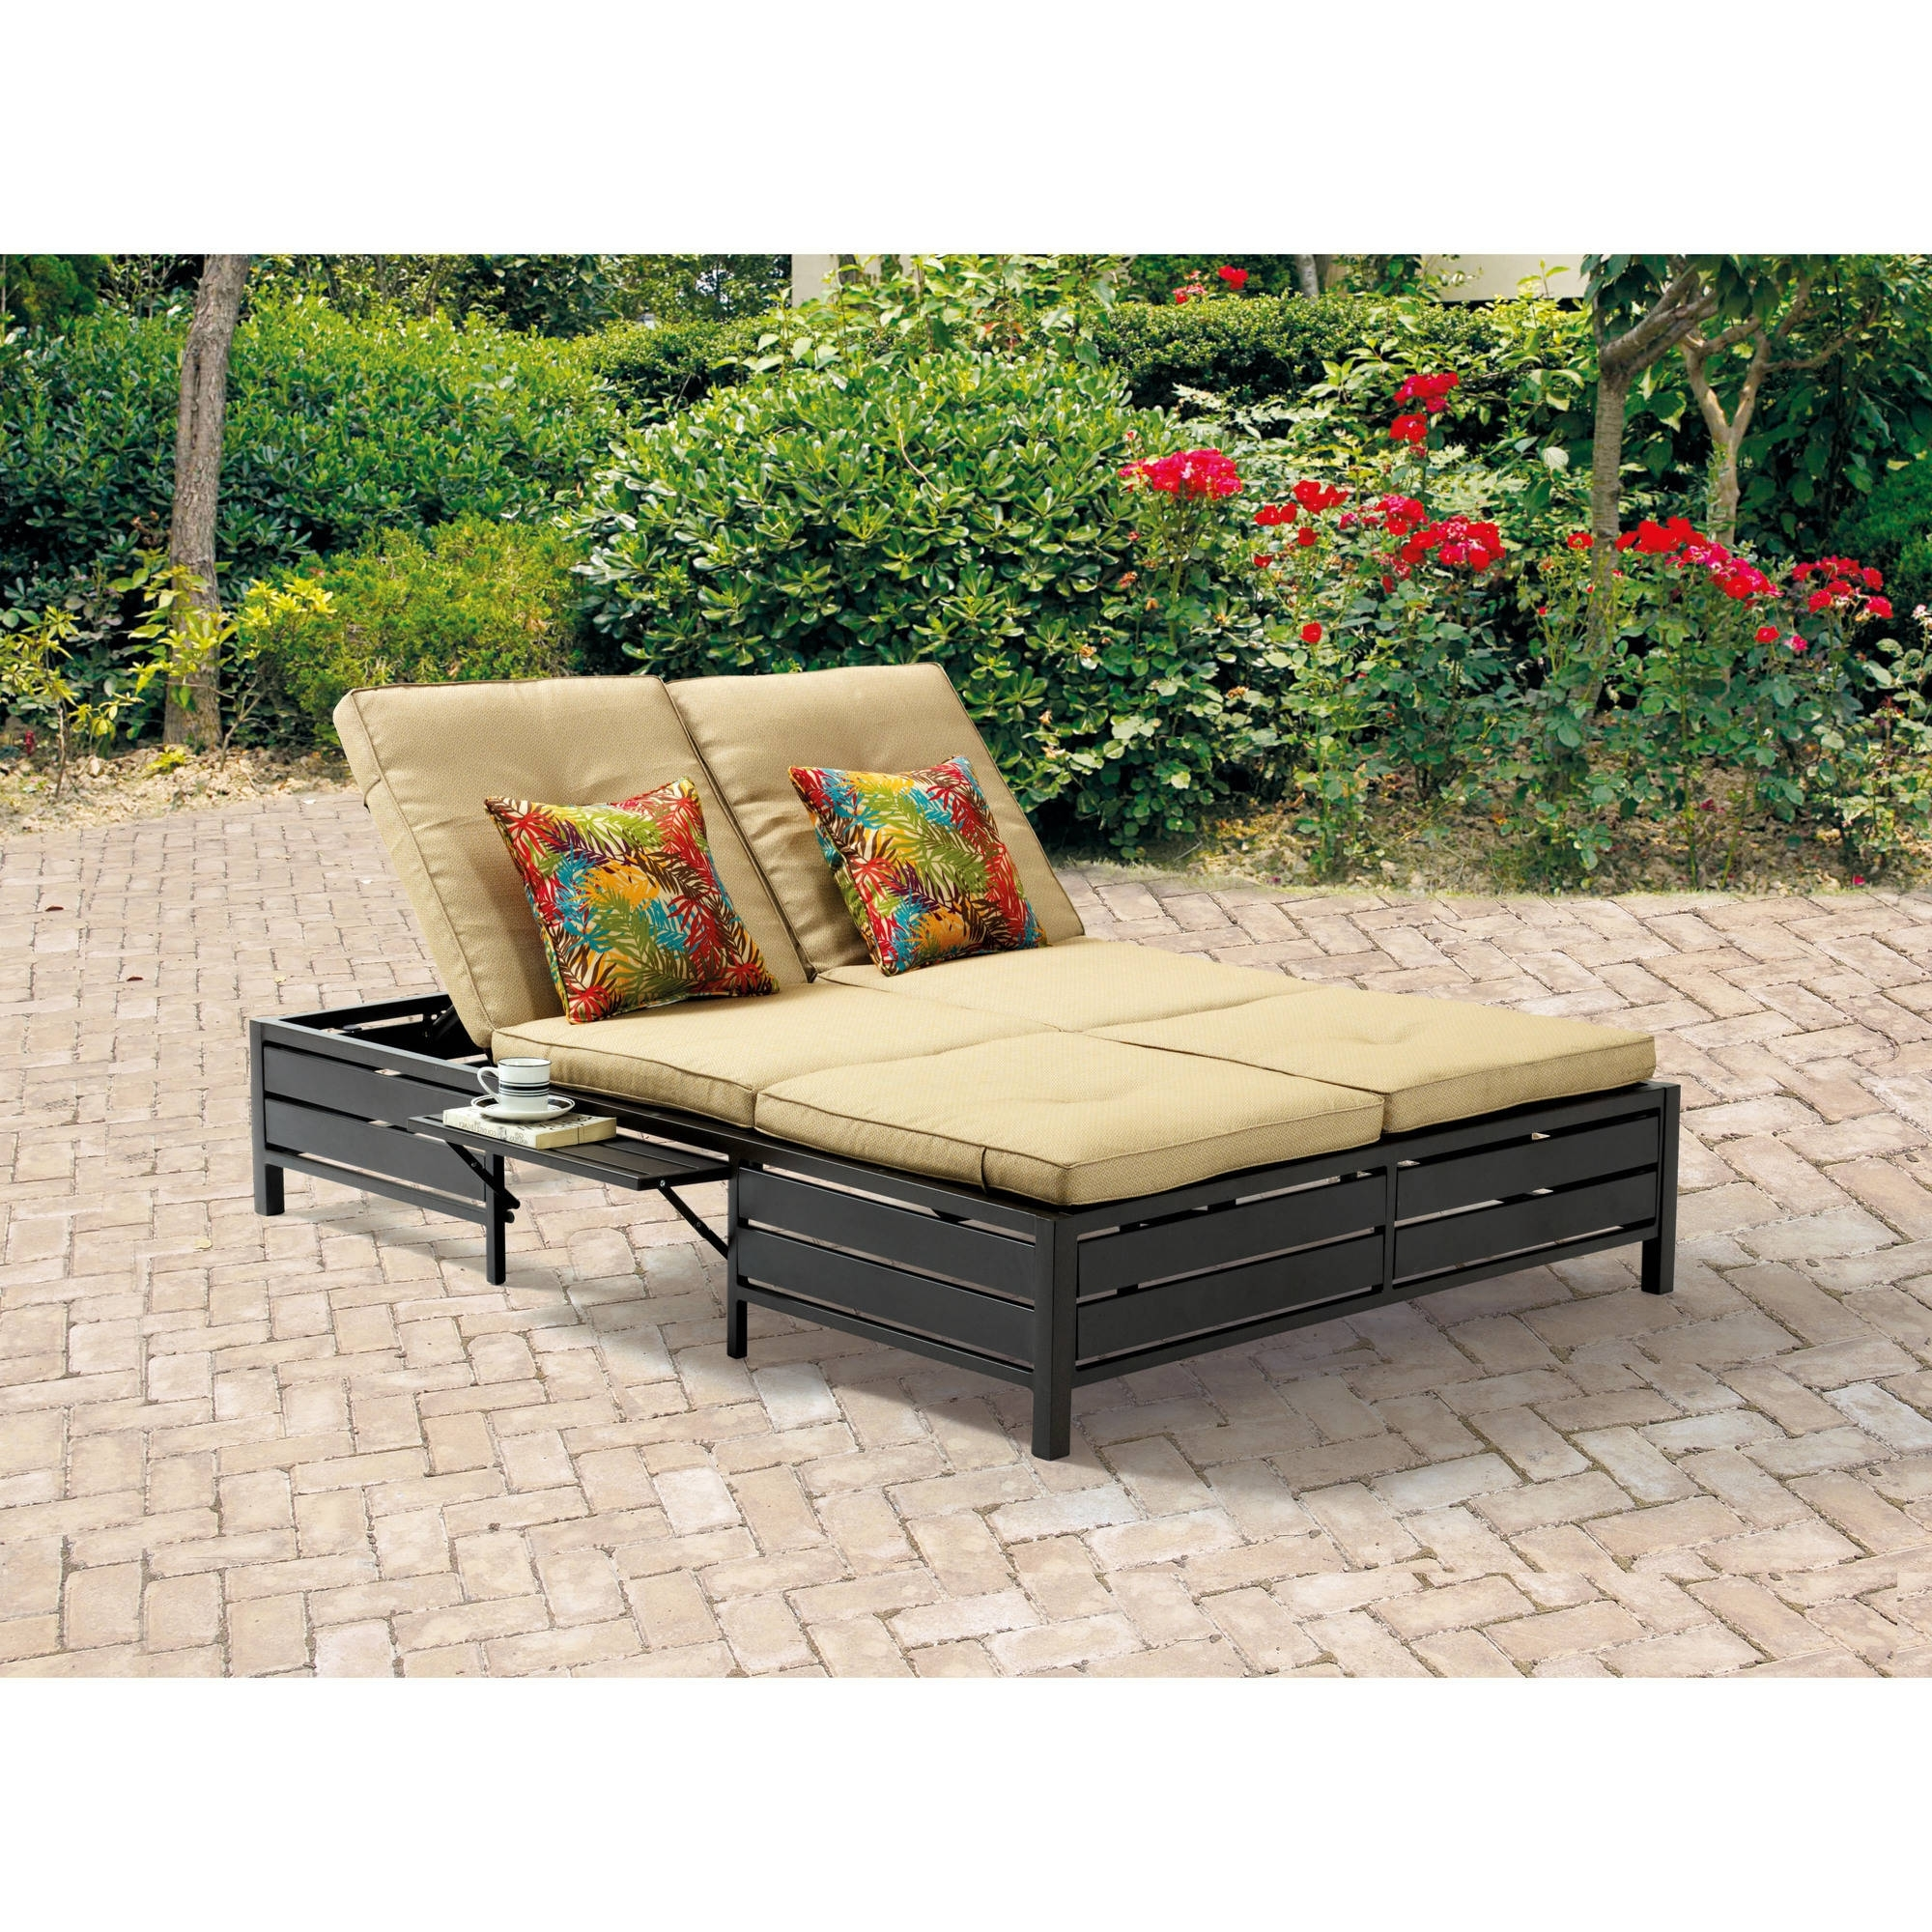 Mainstays Outdoor Double Chaise Lounger, Tan, Seats 2 – Walmart Regarding 2018 Walmart Chaises (View 15 of 15)